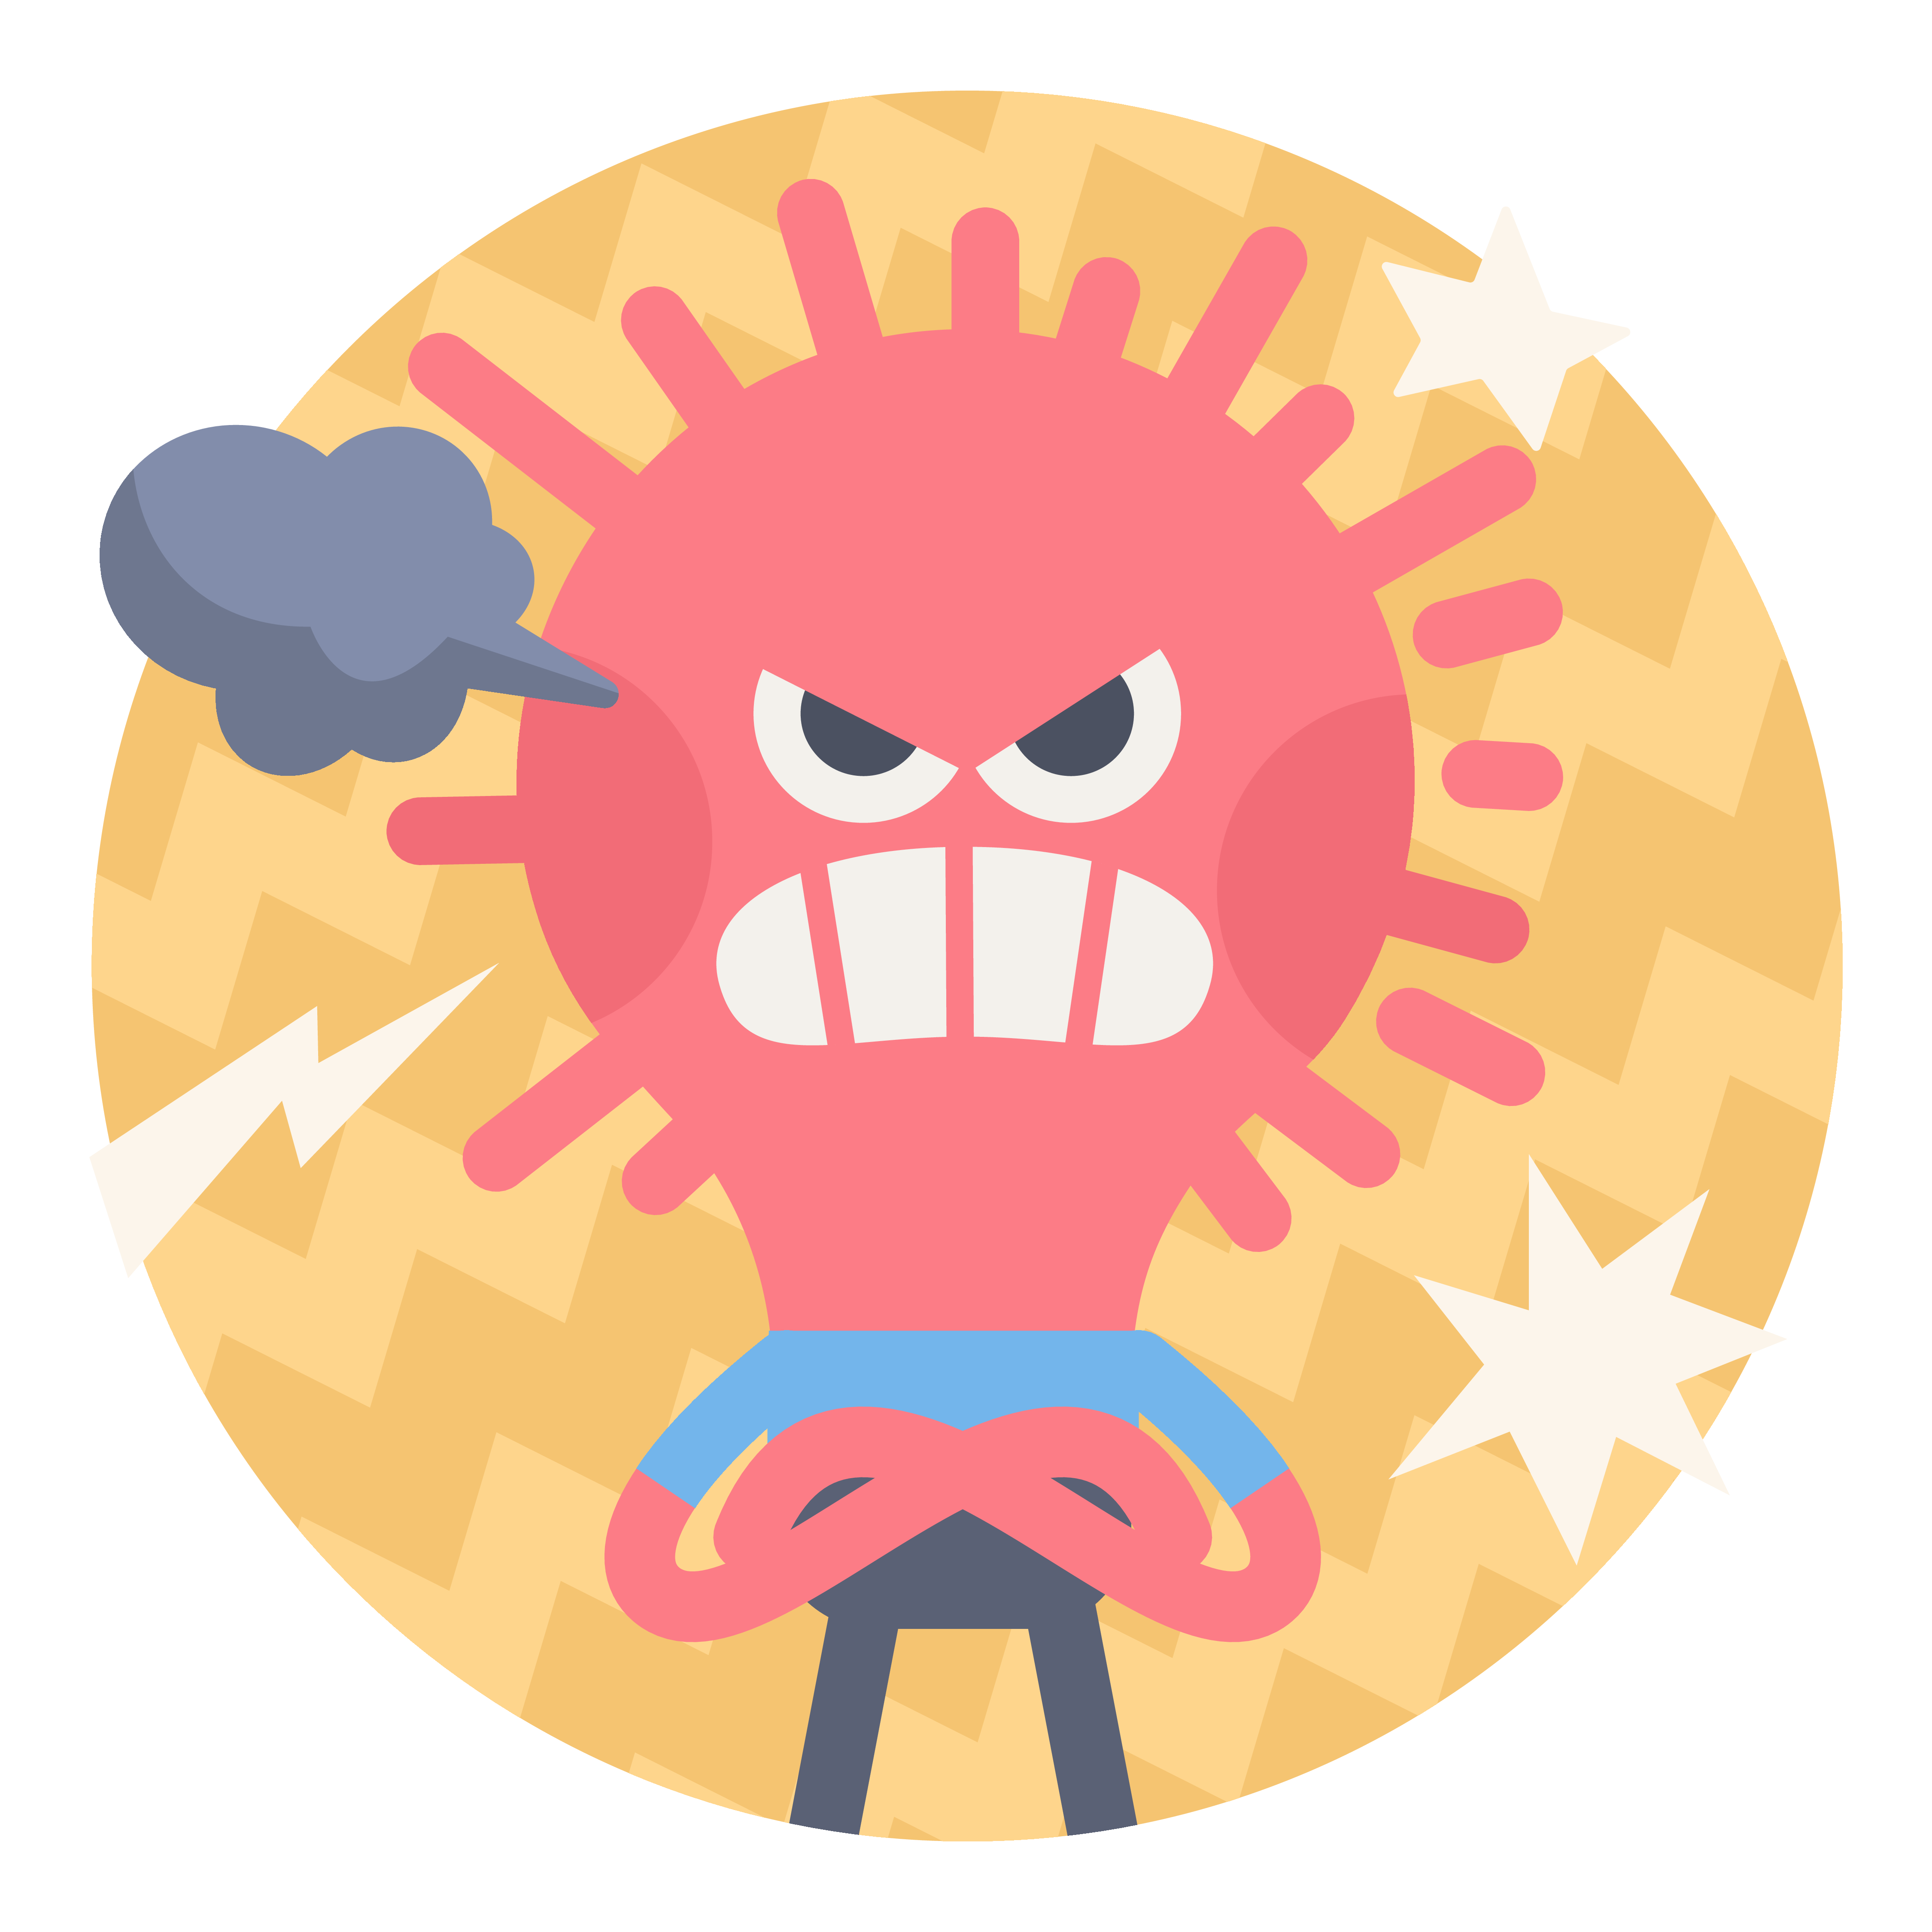 Frustrated clipart state mind. Meditation for anger headspace